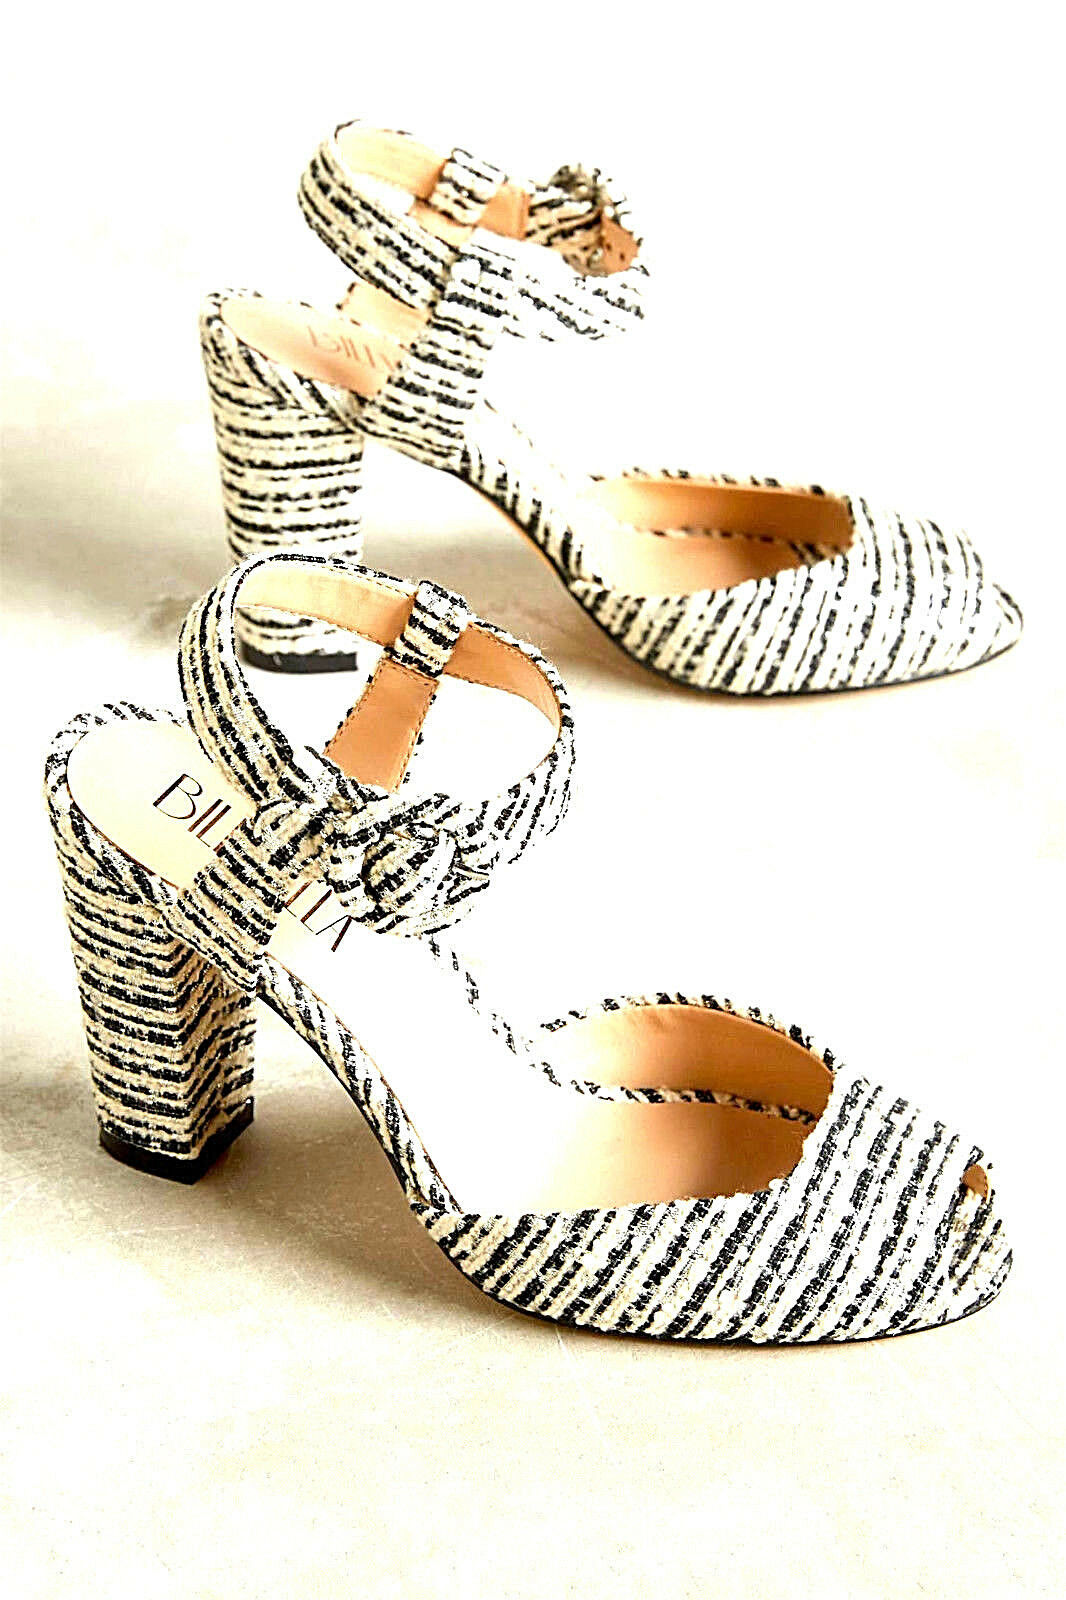 NEW IVORY NIB 148 ANTHROPOLOGIE CC COUTURE STYLE BLACK & IVORY NEW BOUCLE SANDALS HEELS 6 8b344f